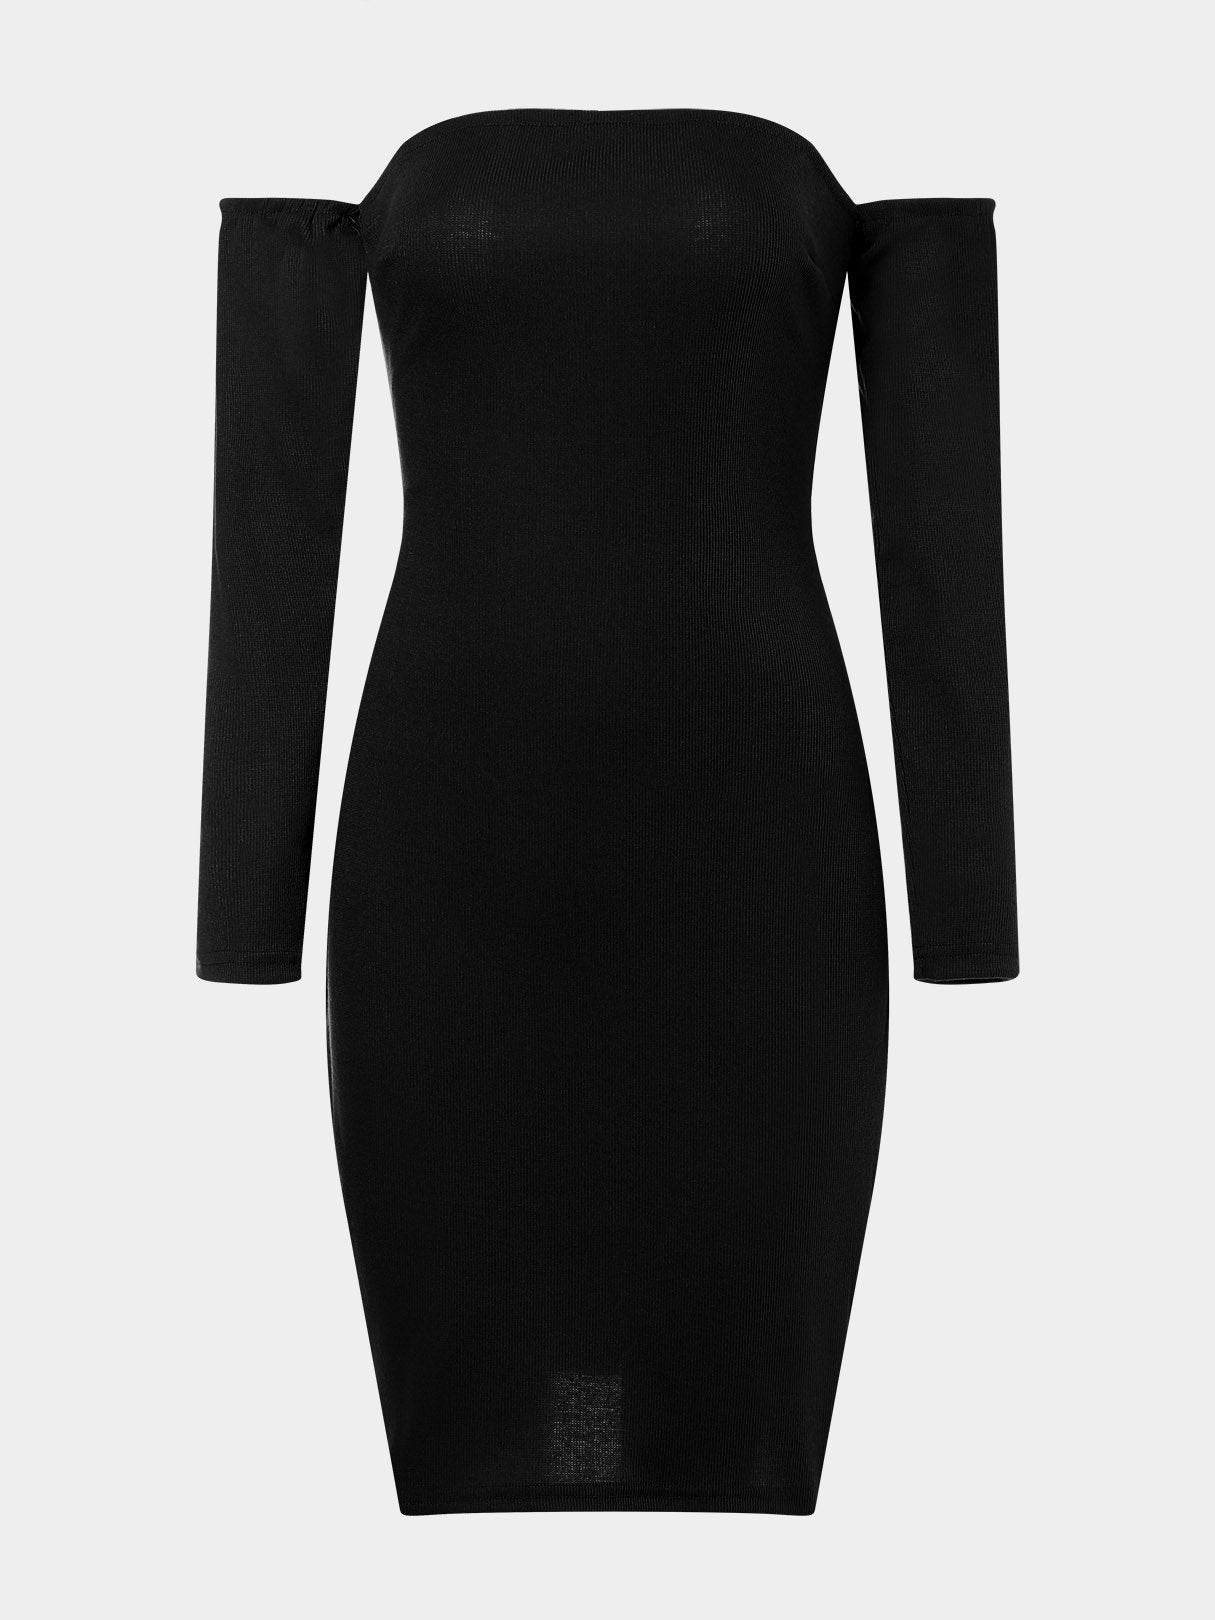 Backless Bodycon Dresses